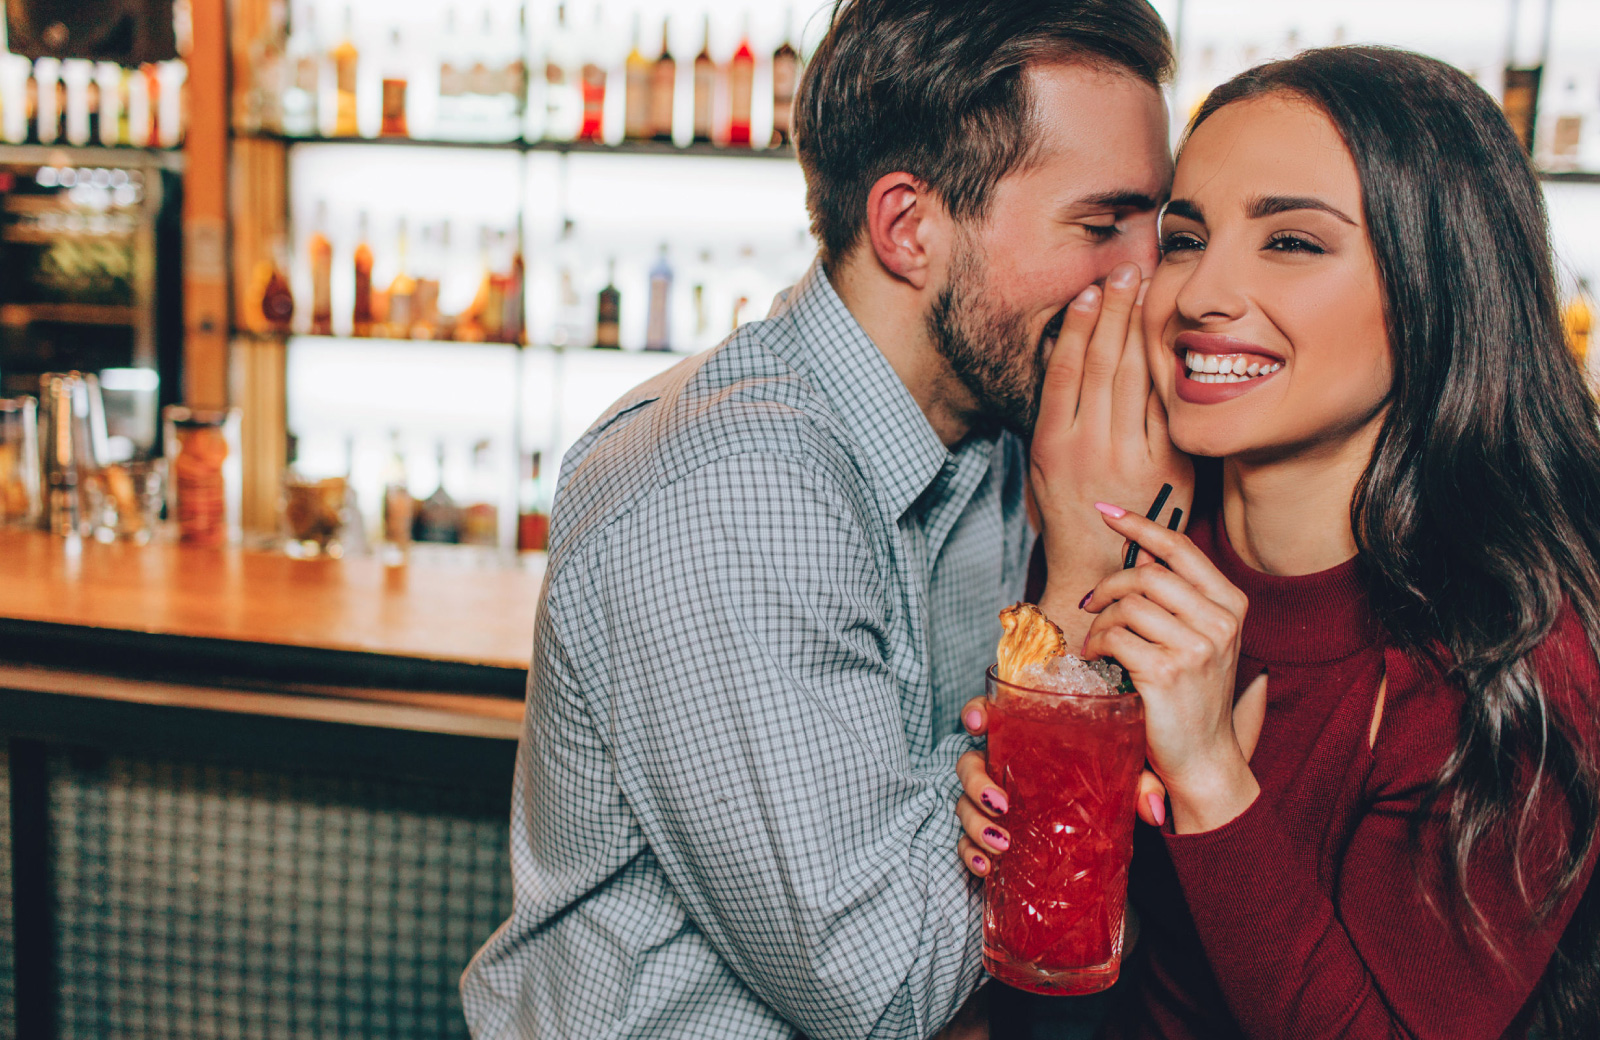 man whispering something to a woman in a bar